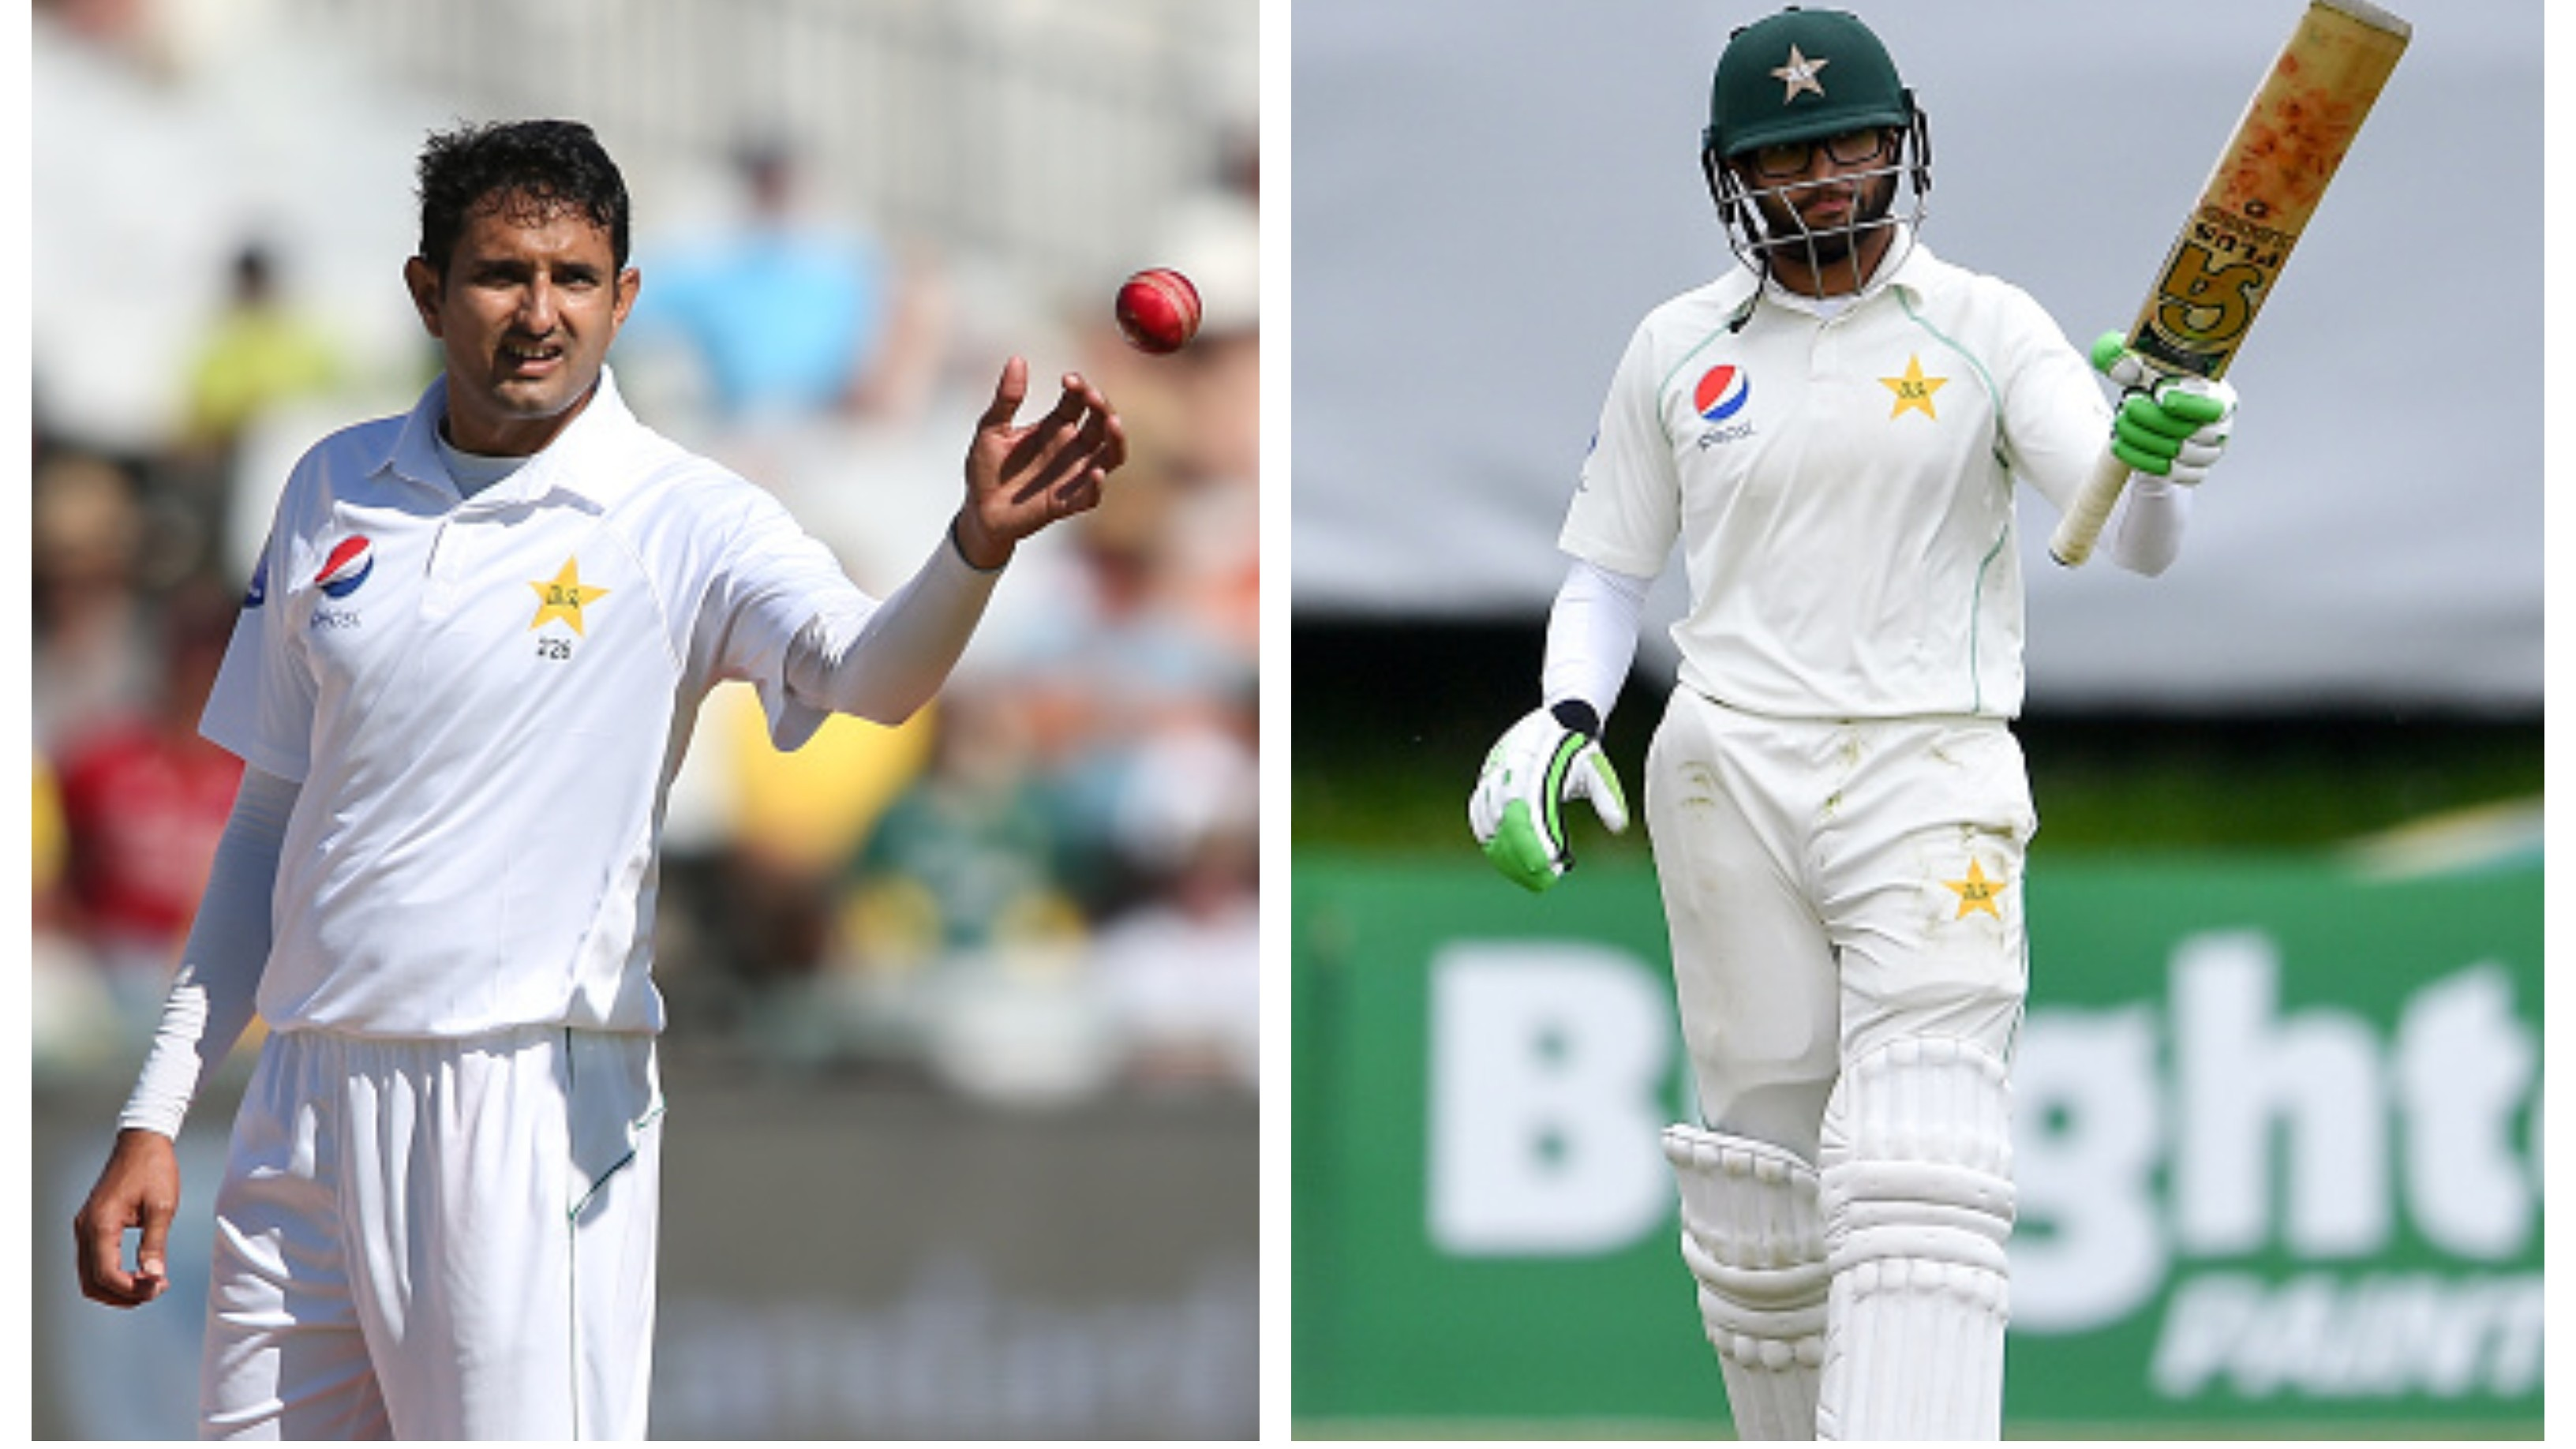 AUS v PAK 2019: Pakistan could bring in Imam, Abbas for Adelaide Test